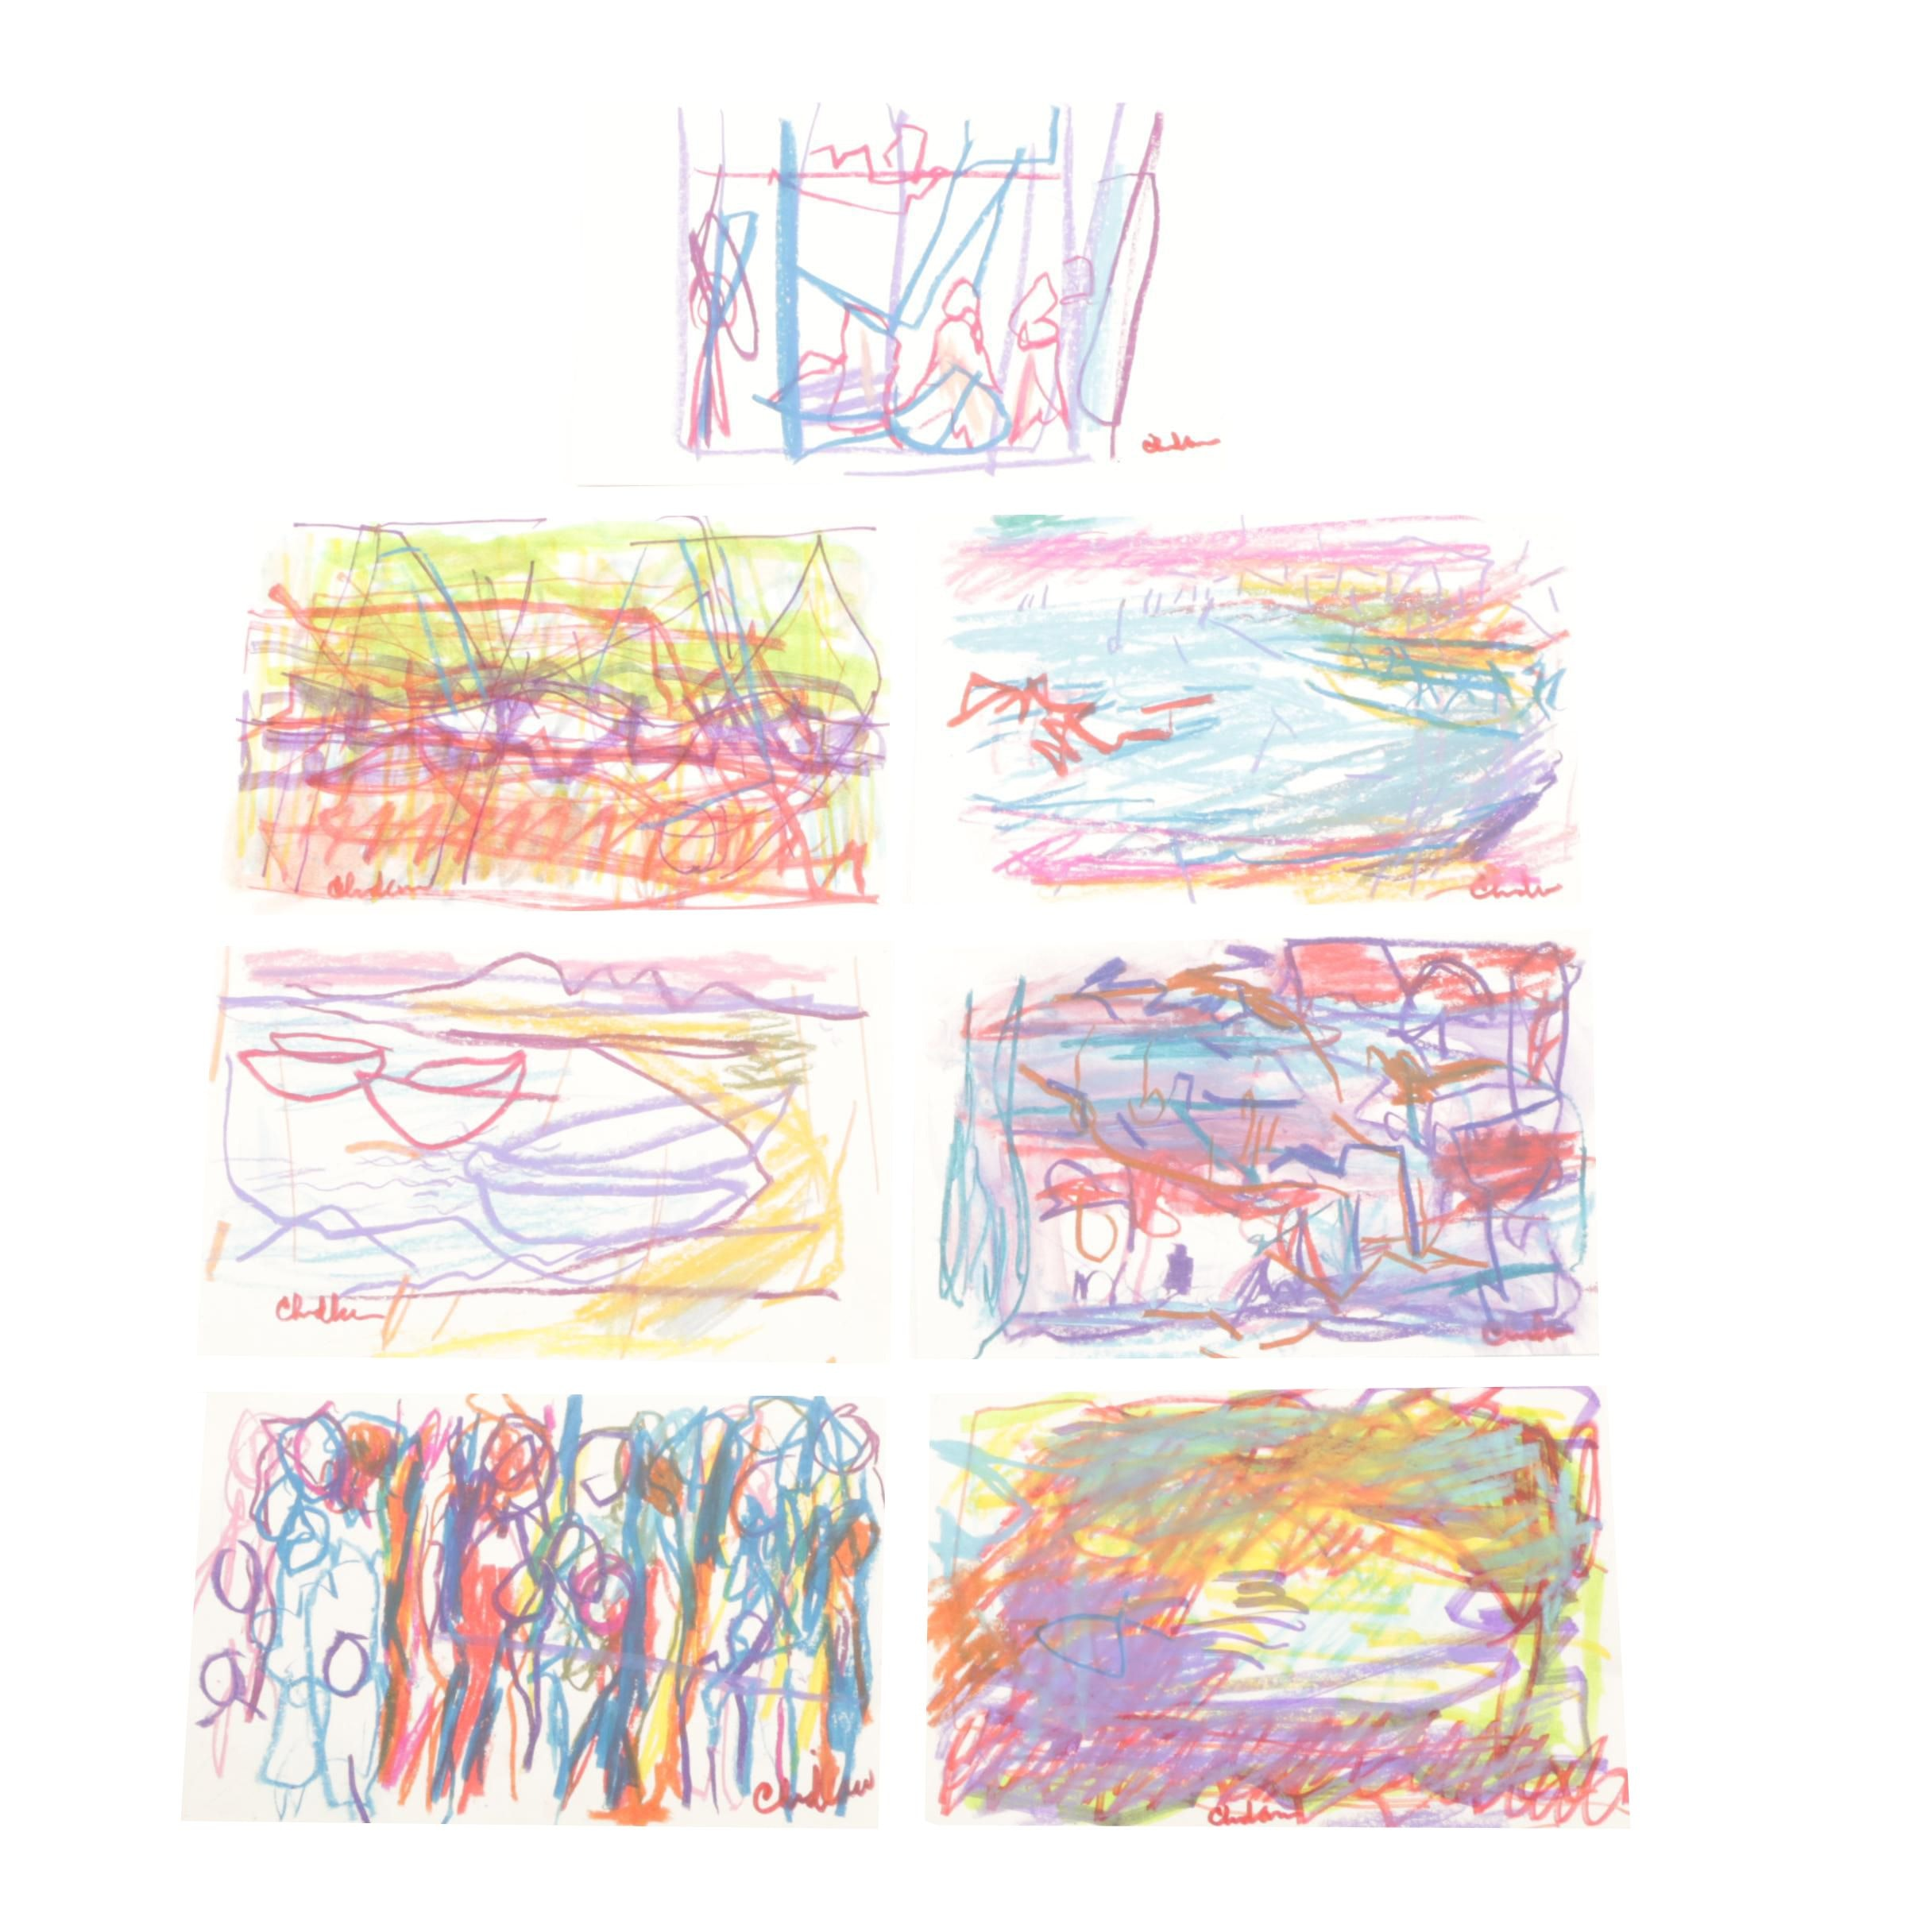 Paul Chidlaw Abstract Expressionist Mixed Media Drawings